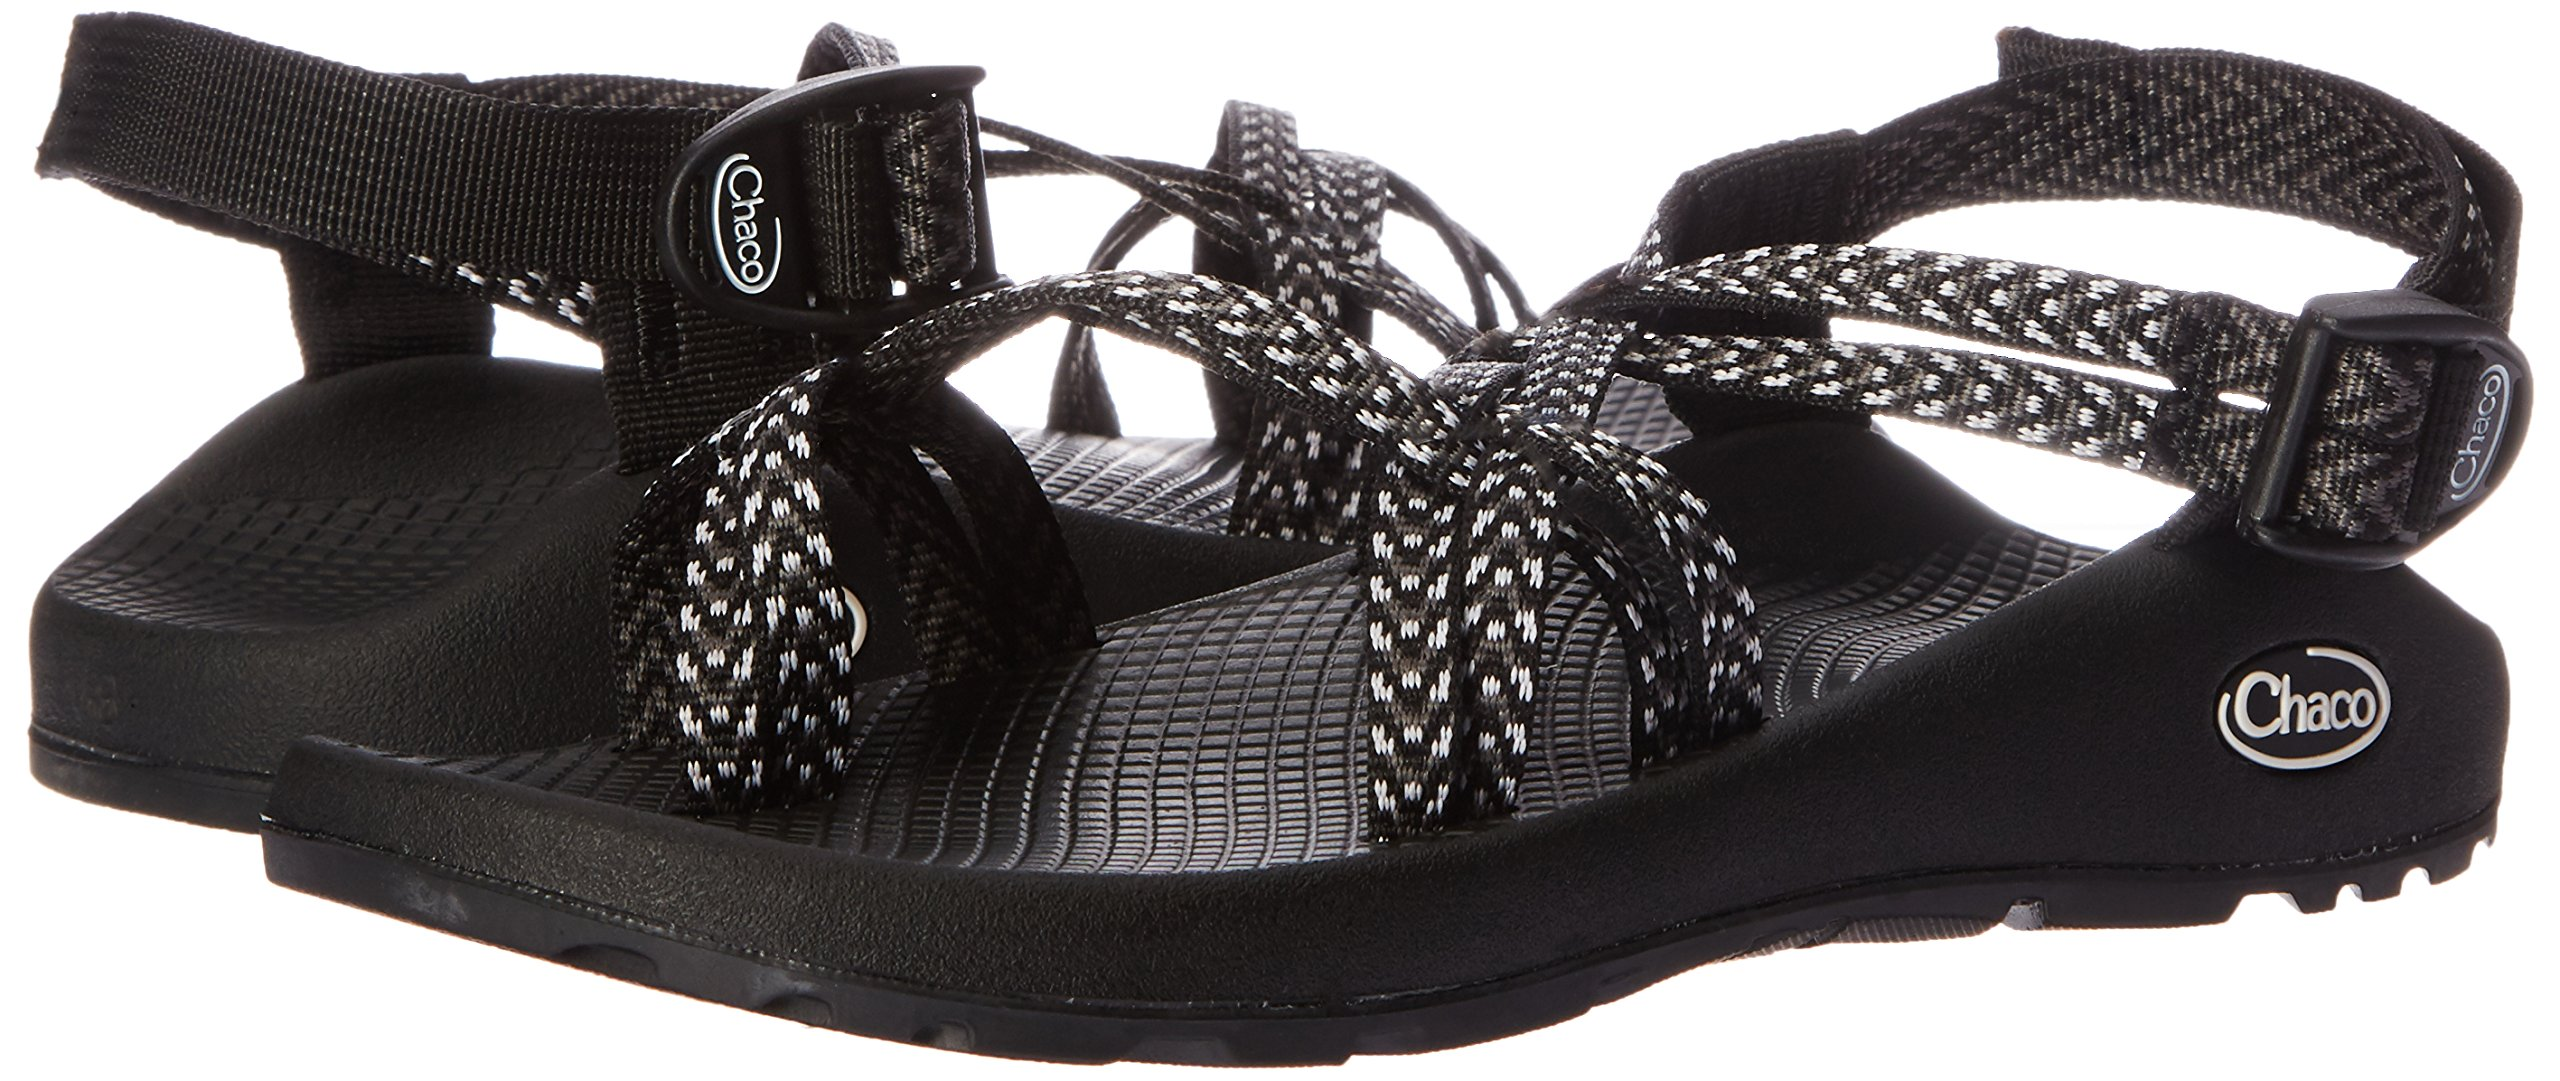 Chaco Women's ZX2 Classic Athletic Sandal, Boost Black, 7 M US by Chaco (Image #6)